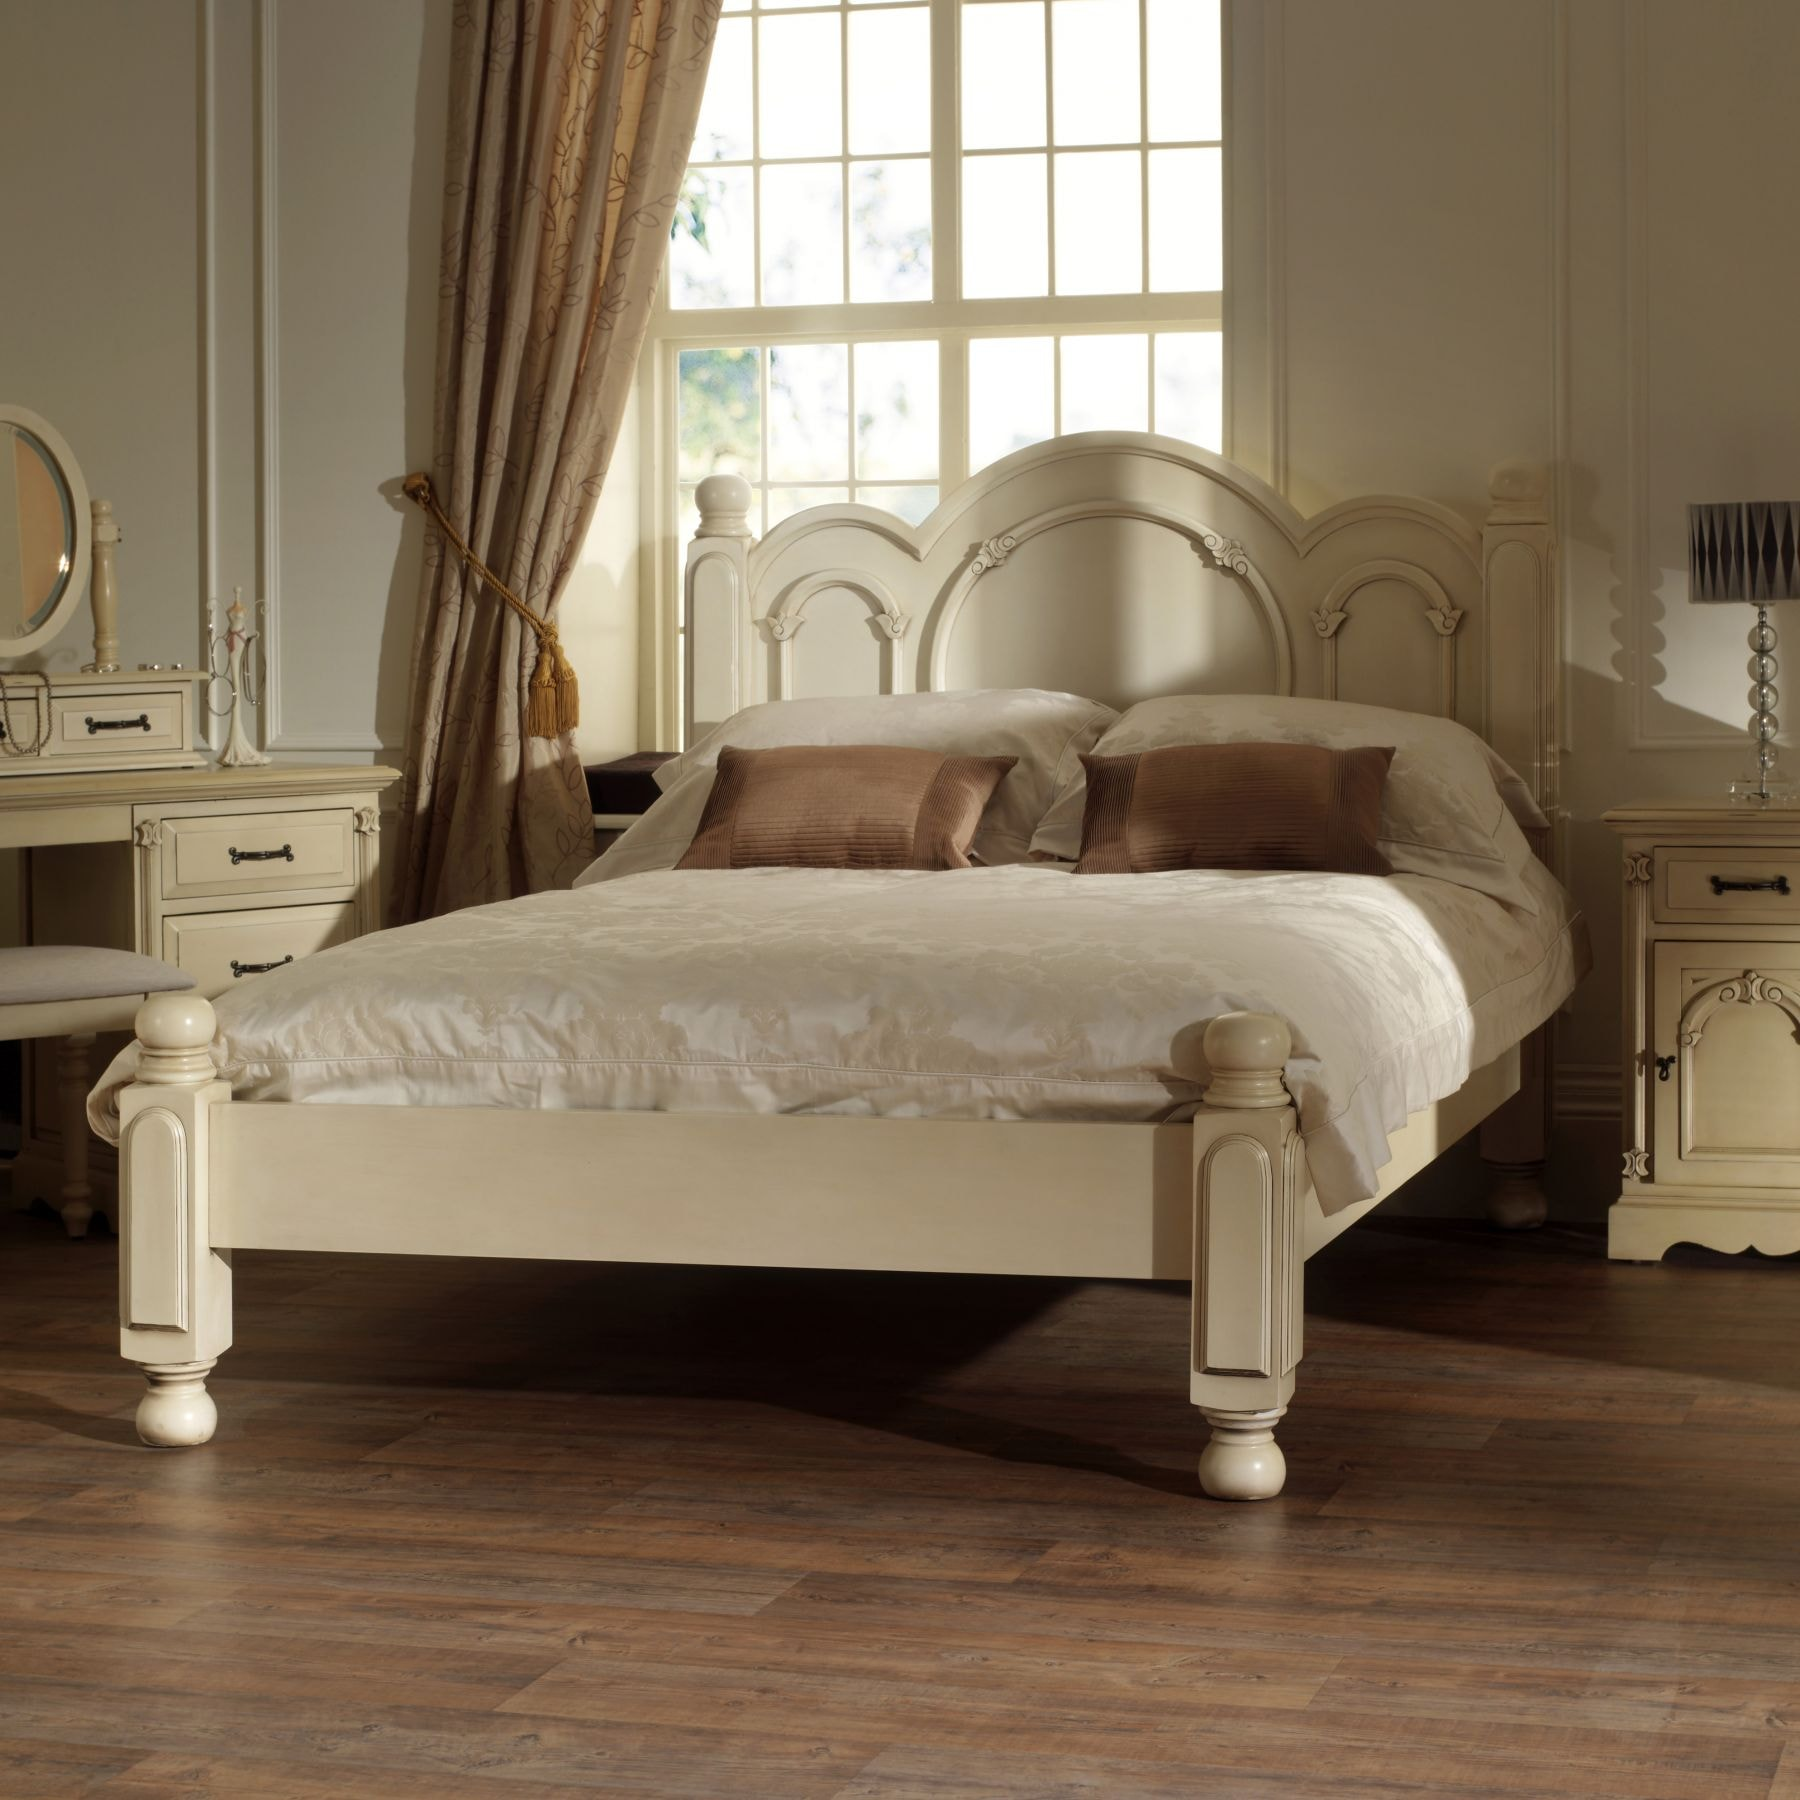 Marvelous Victorian Antique French Bed To Compliment Our Stunning French Interiors